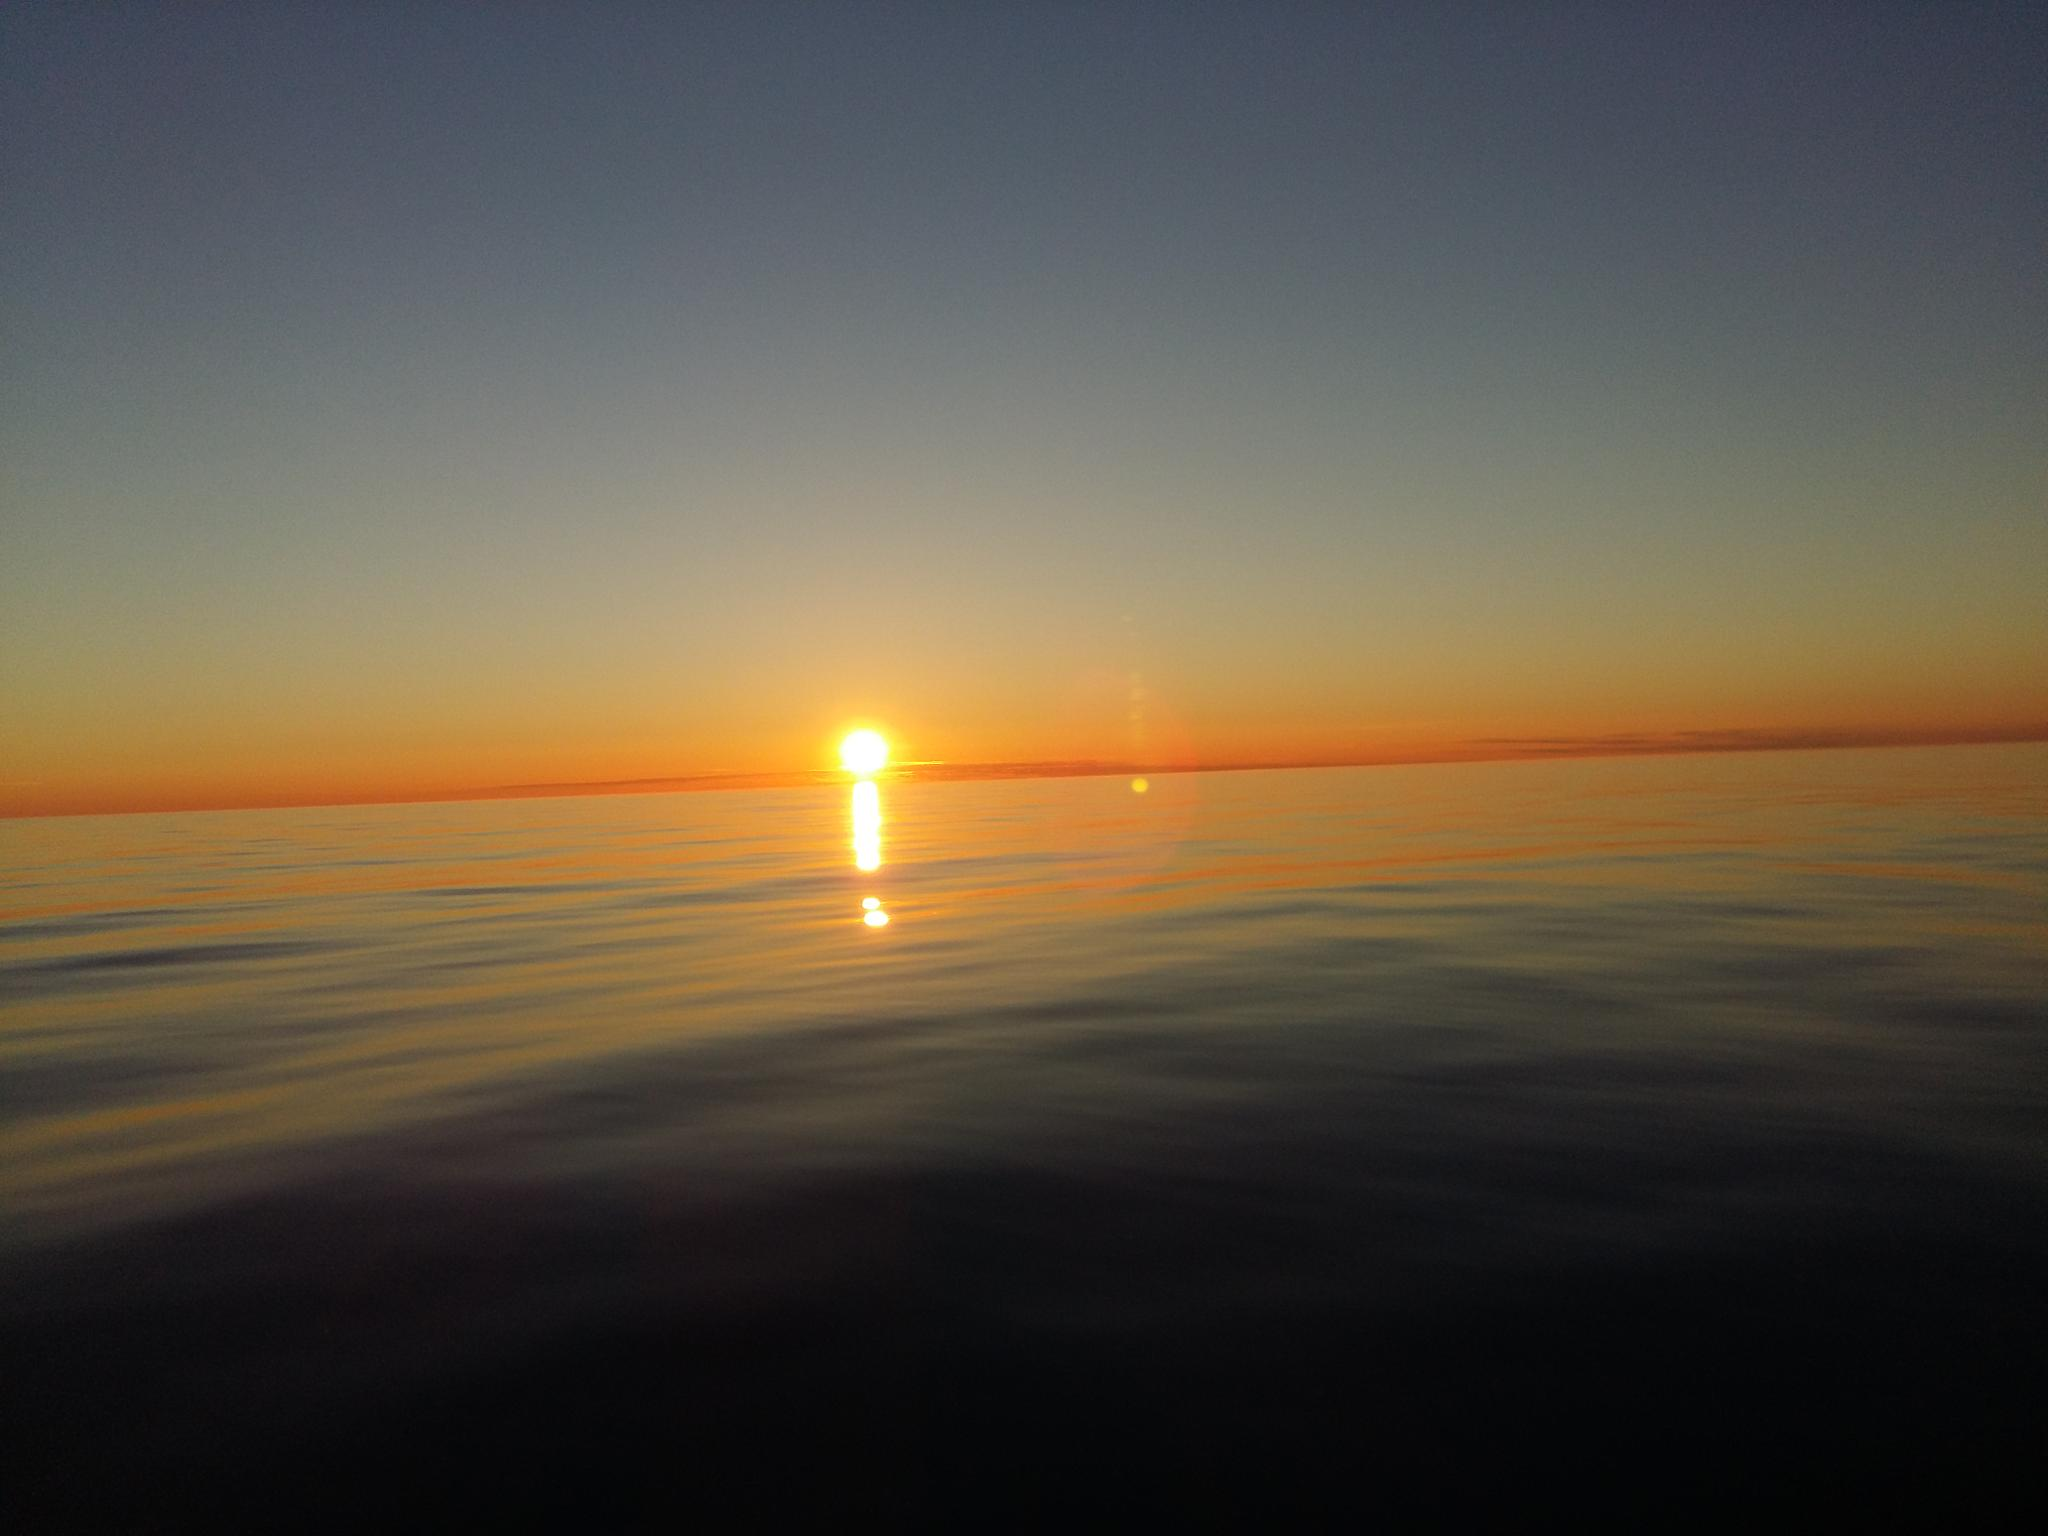 Sunseth at sea, North Norway by Tor Johansen